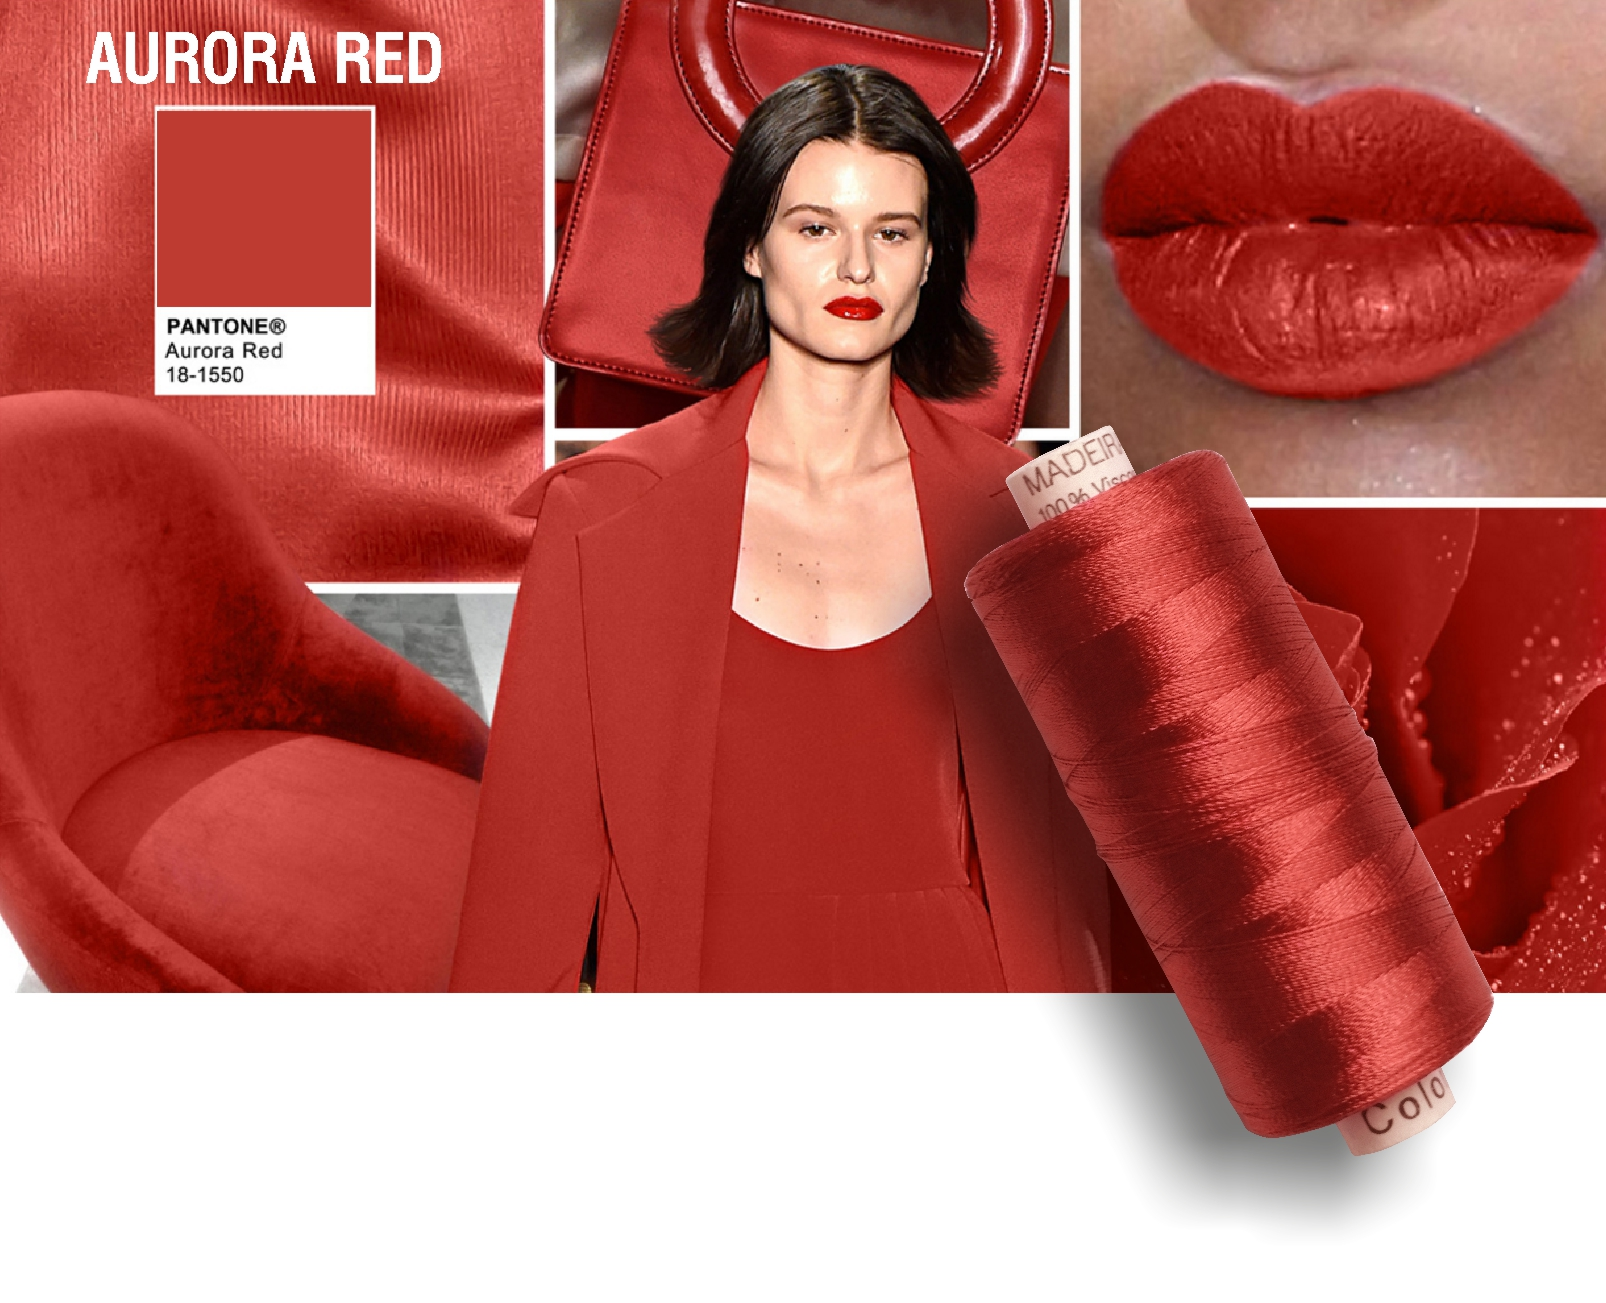 pantone aurora red - photo #35